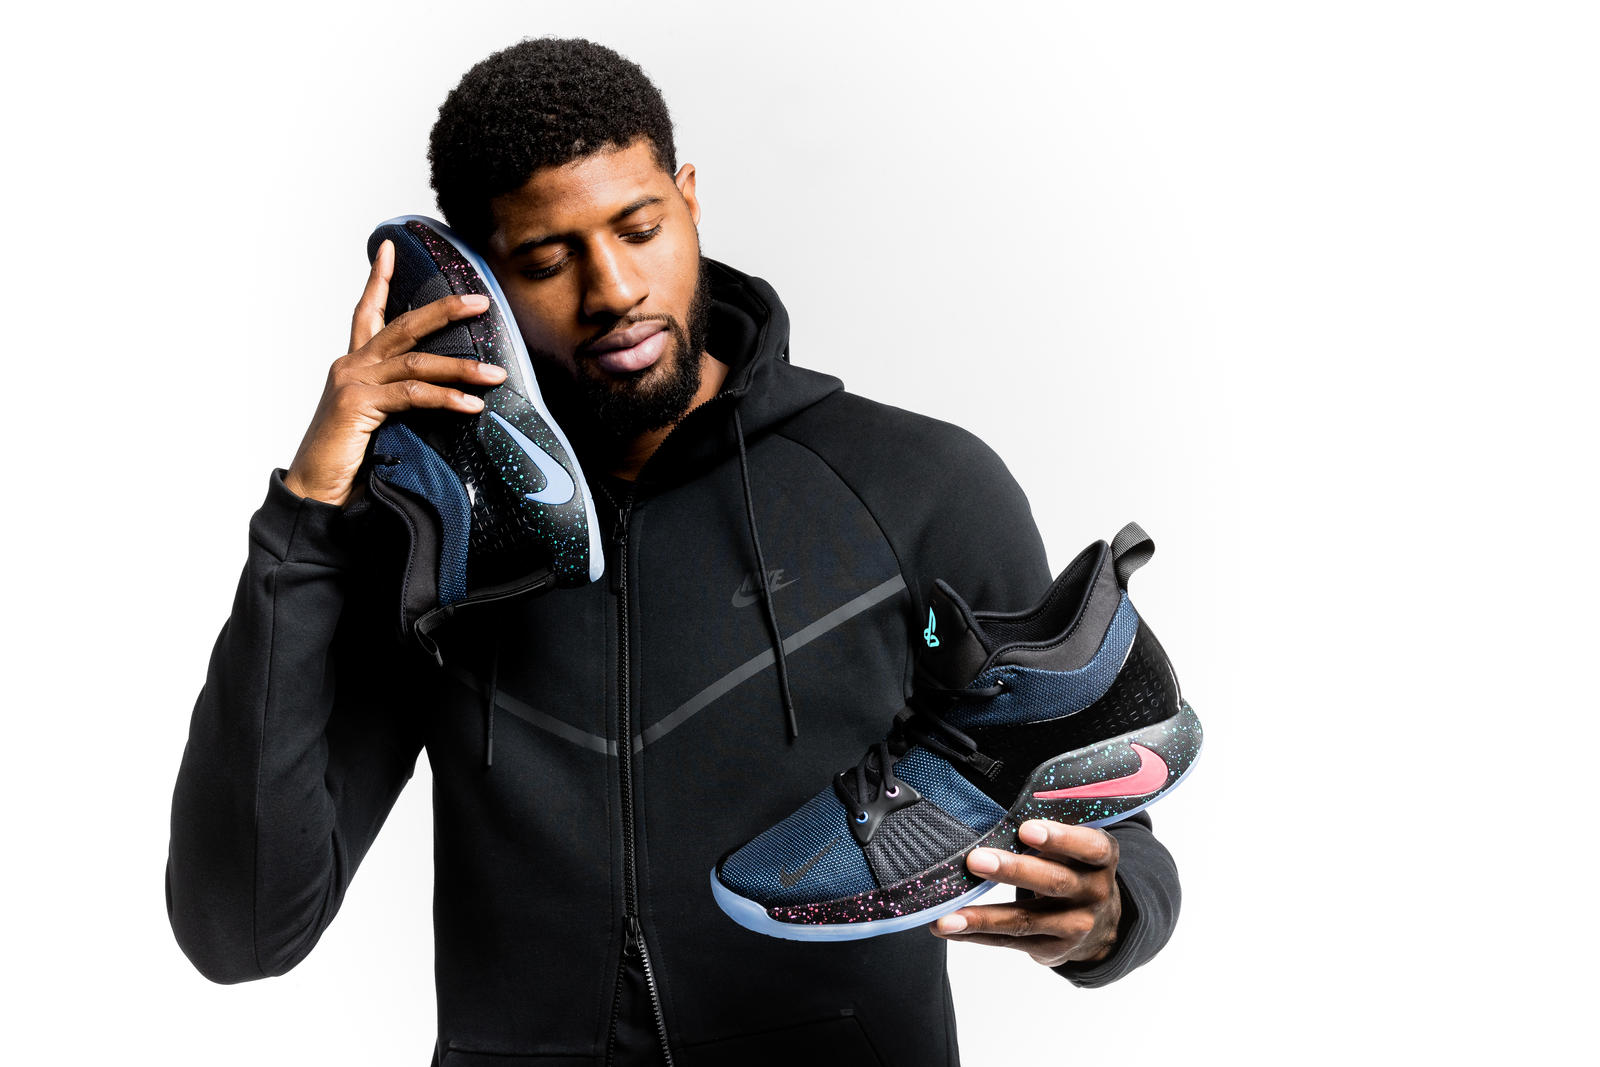 Introducing Paul George's Second Signature Shoe, the PG2 2